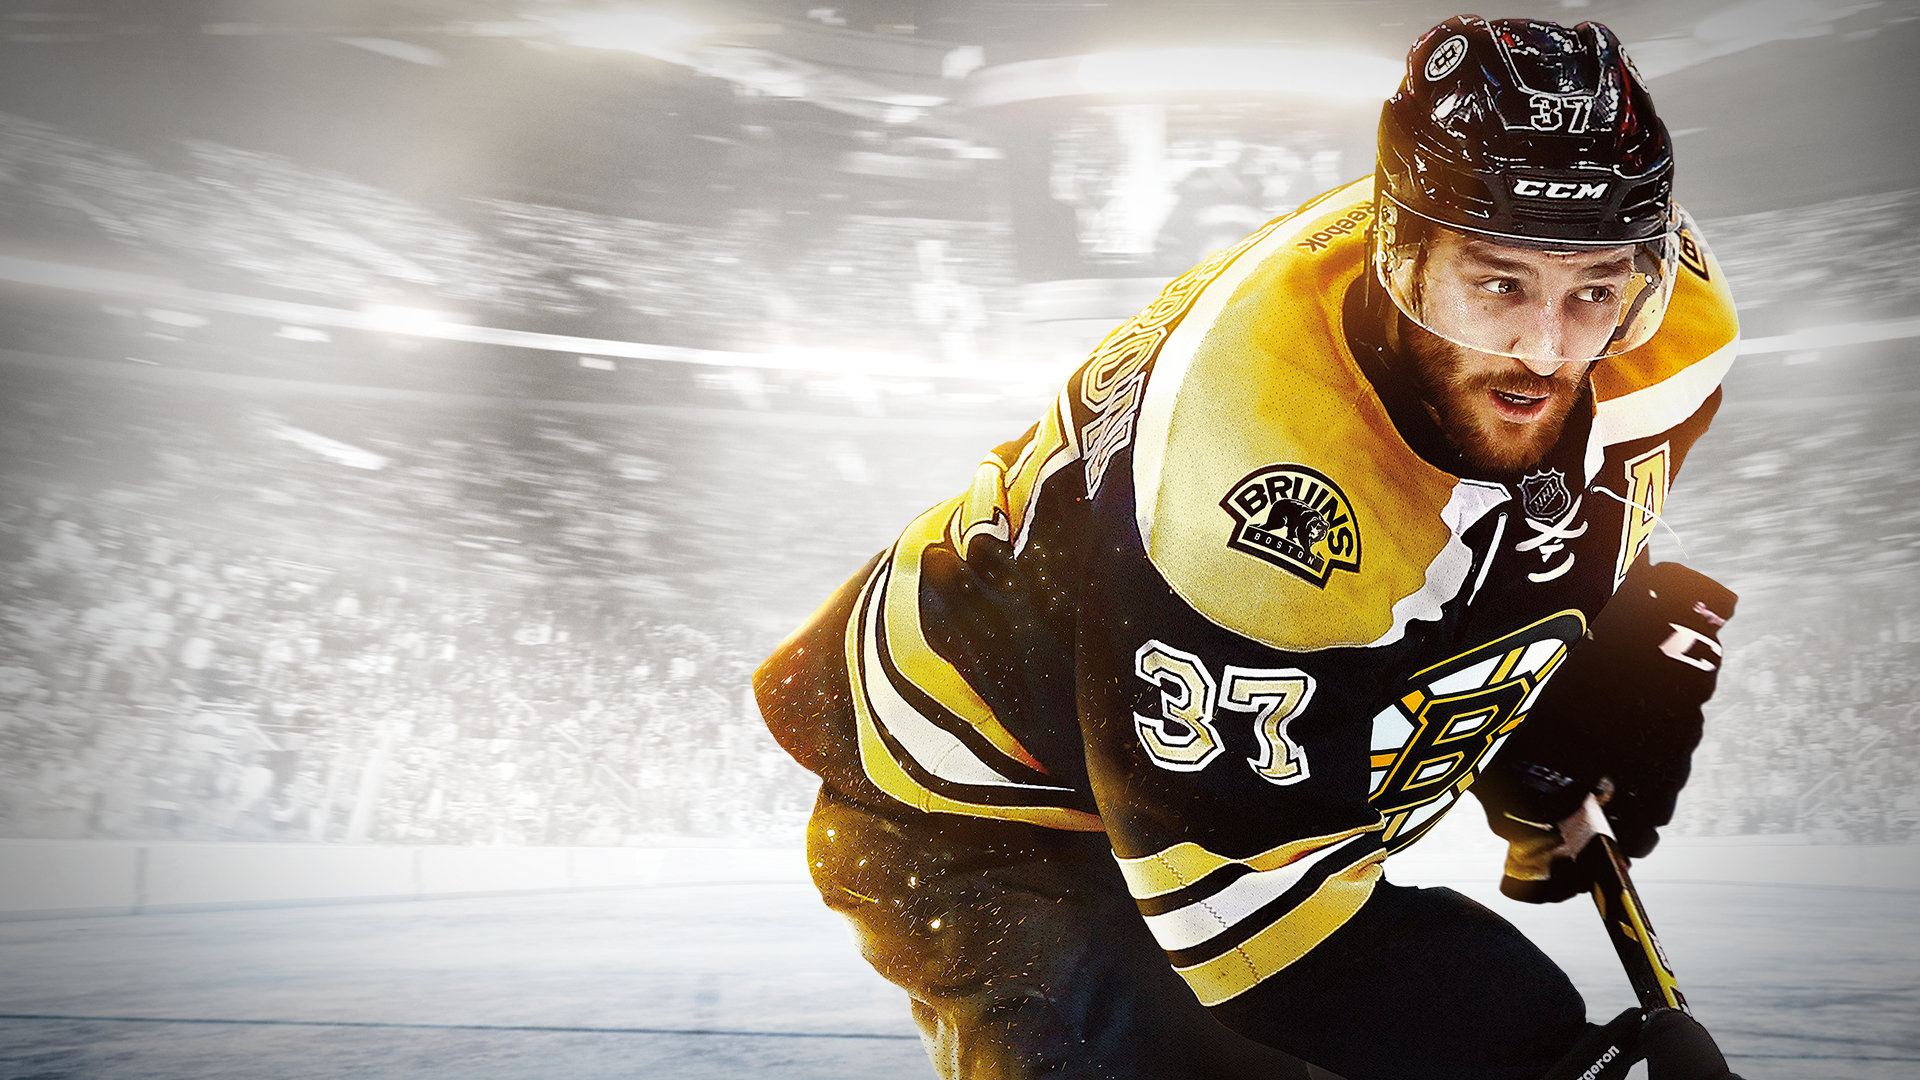 Nhl 15 Available For Pre Order And Pre Download On Xbox One Xbox Wire